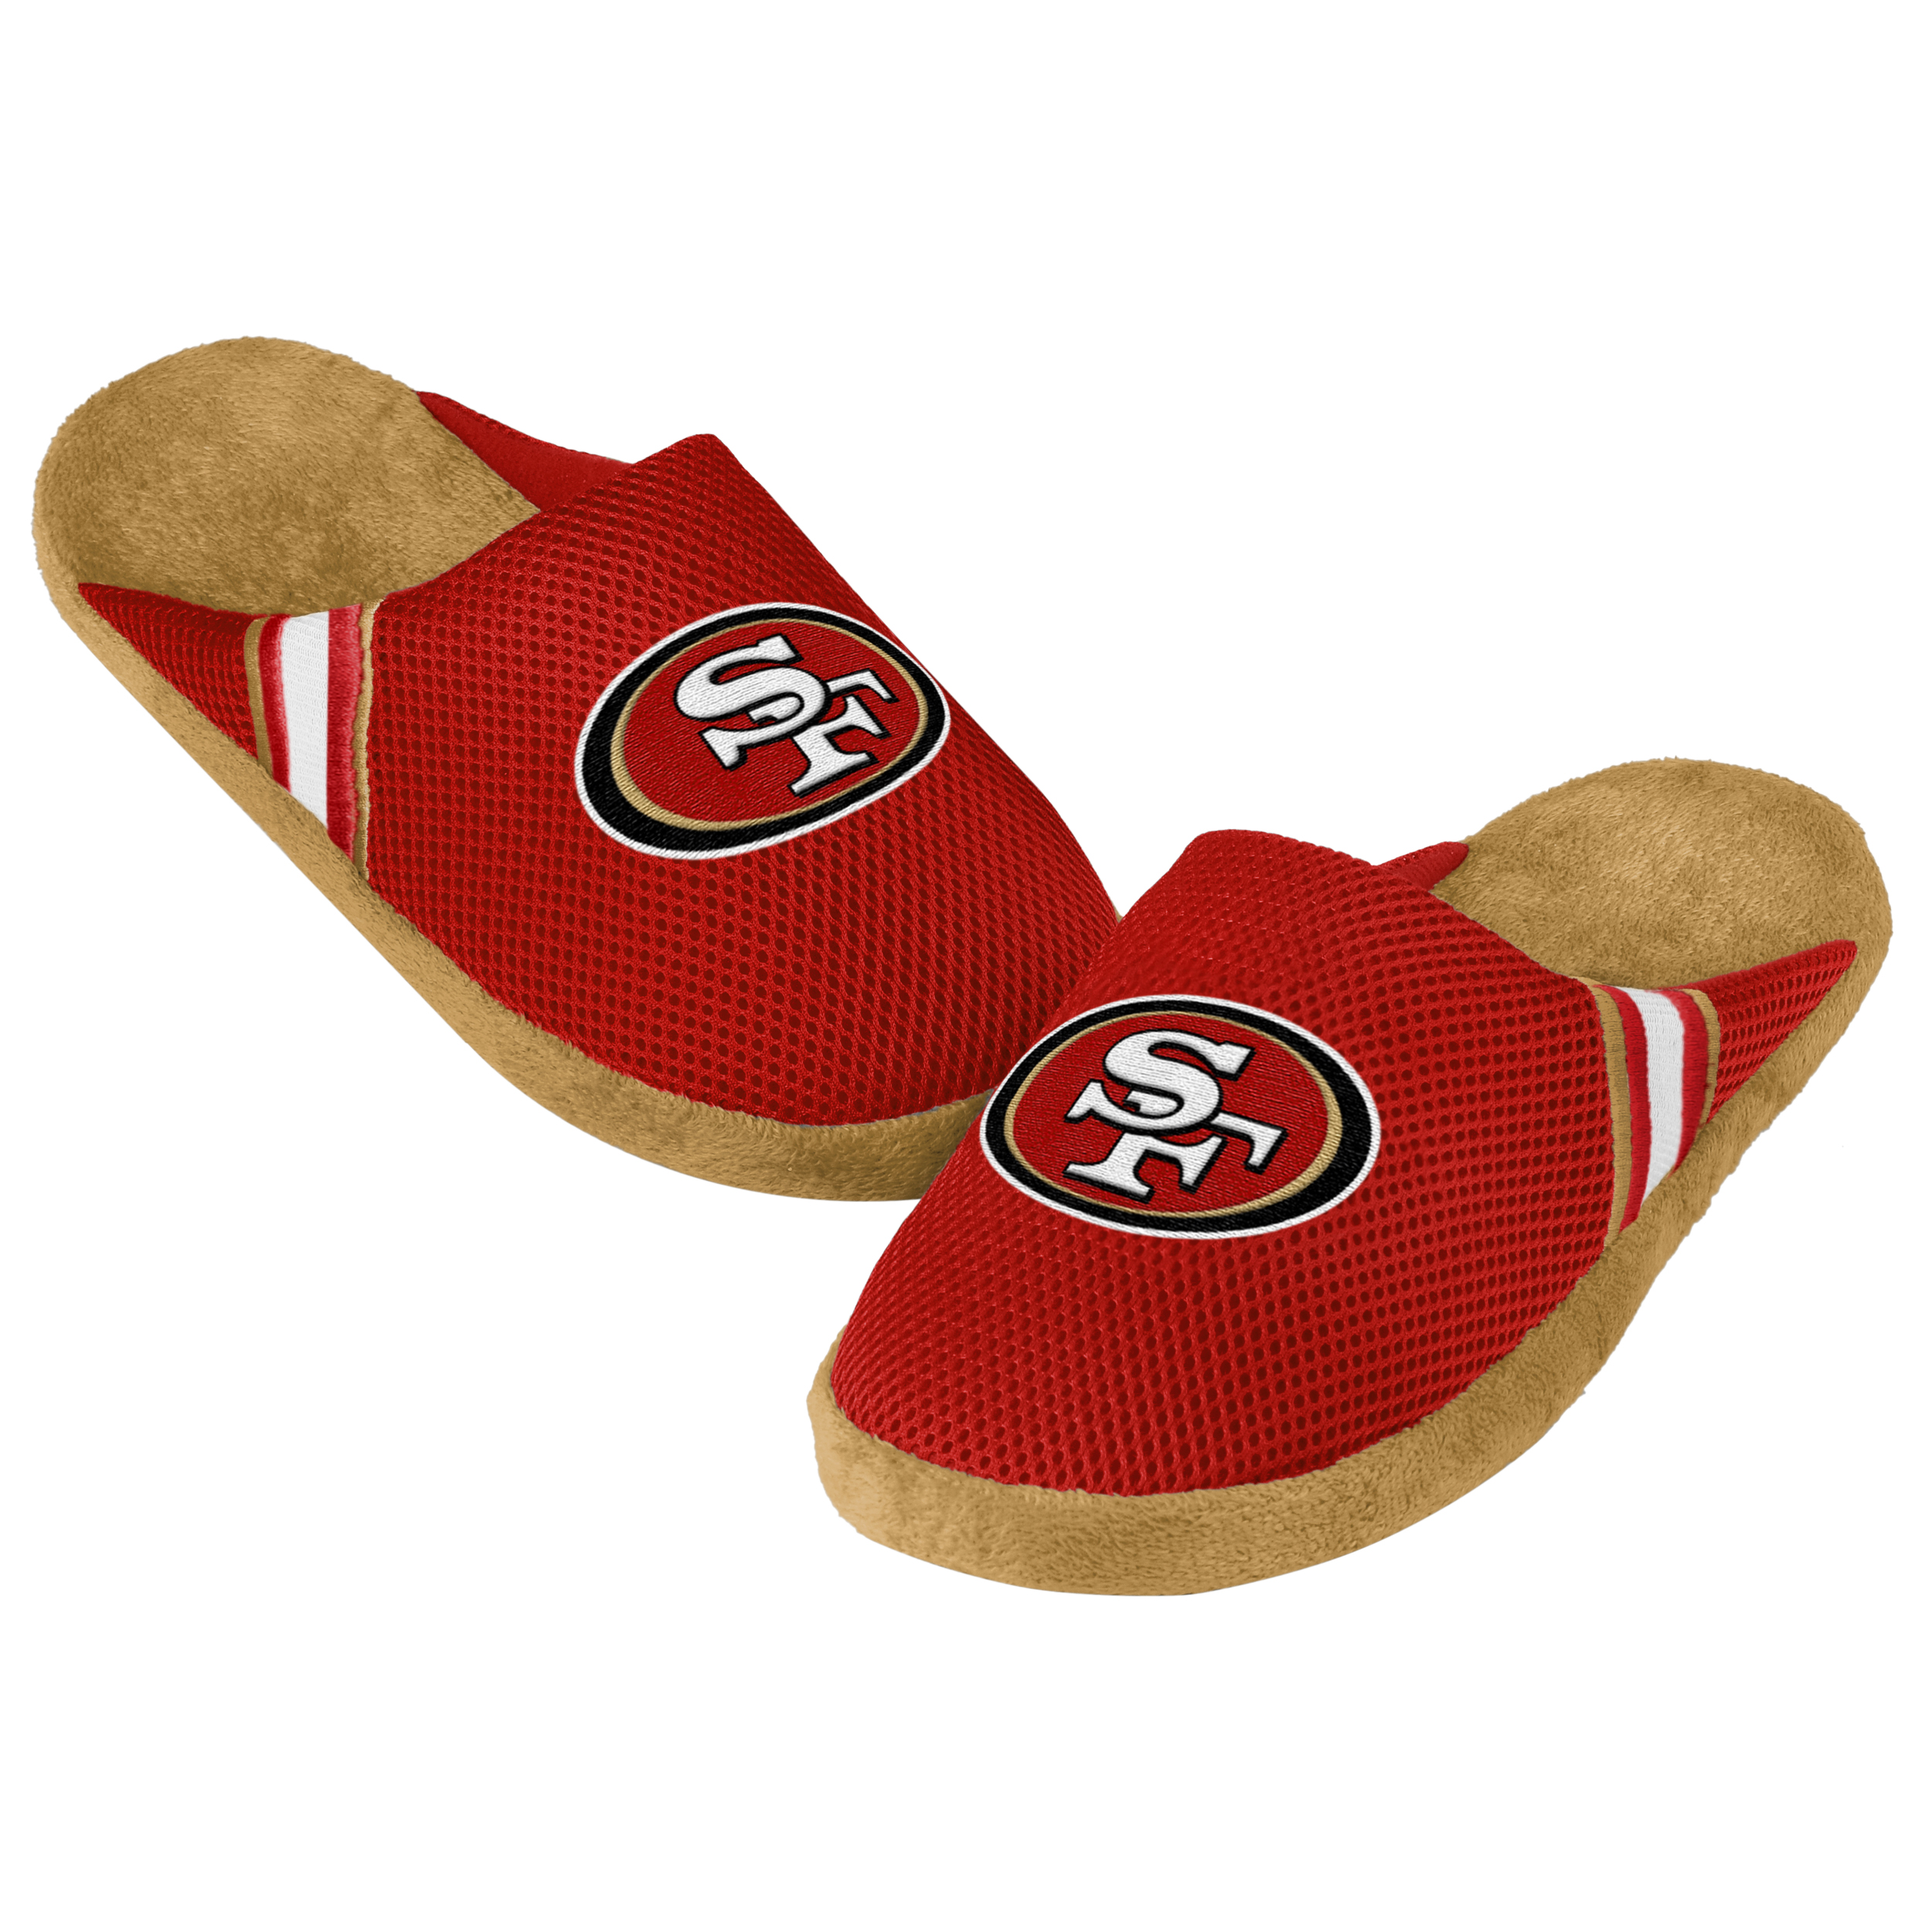 San Francisco 49ers Jersey Slippers - 12pc Case